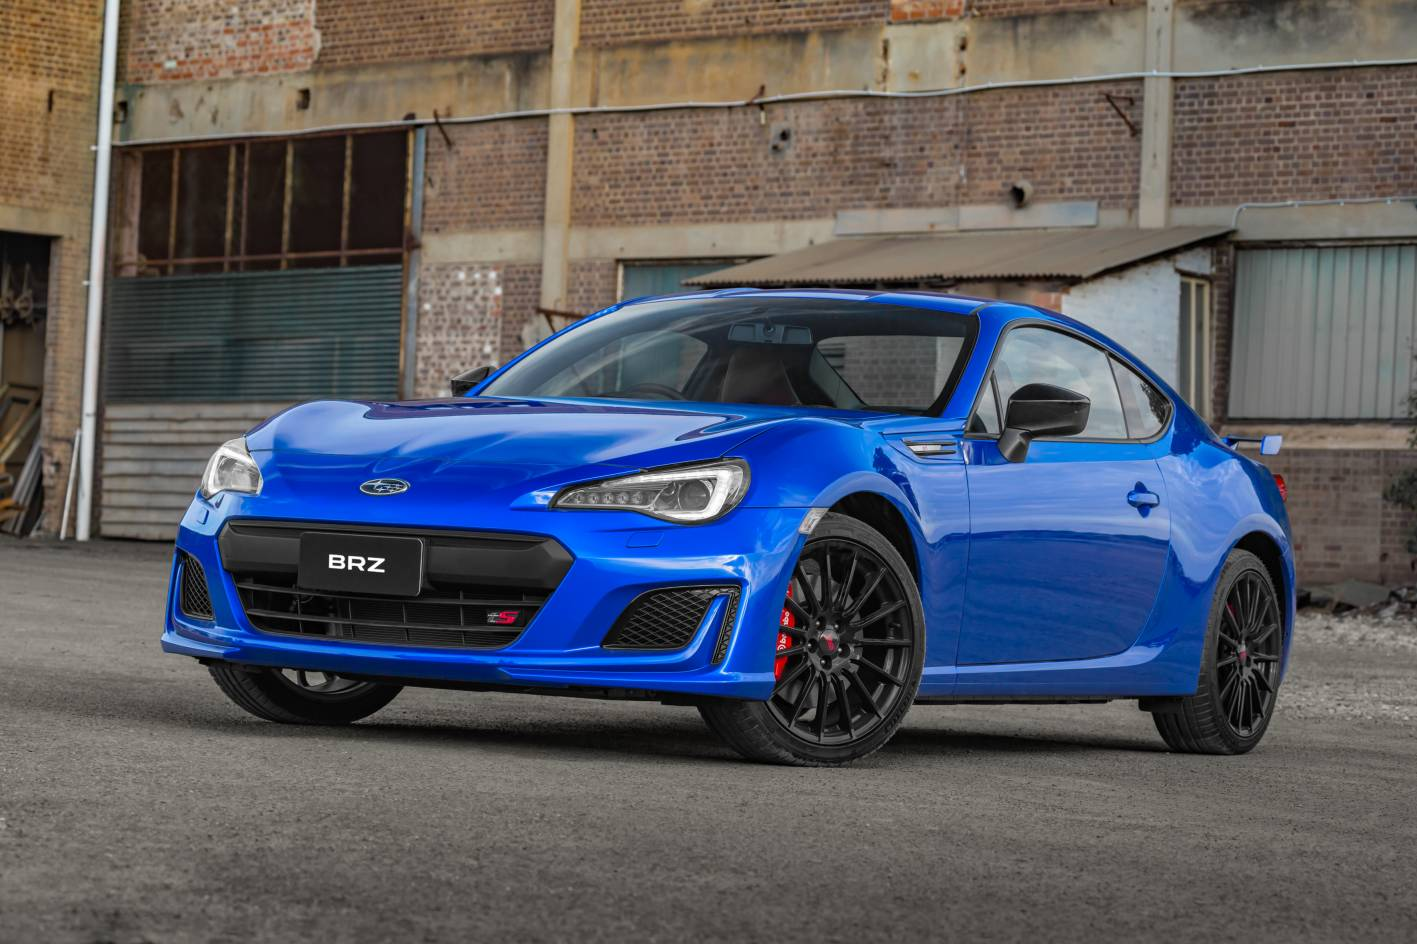 Subaru Brz Ts Launched As New Range Topper With Sti Goodies Forcegt Com